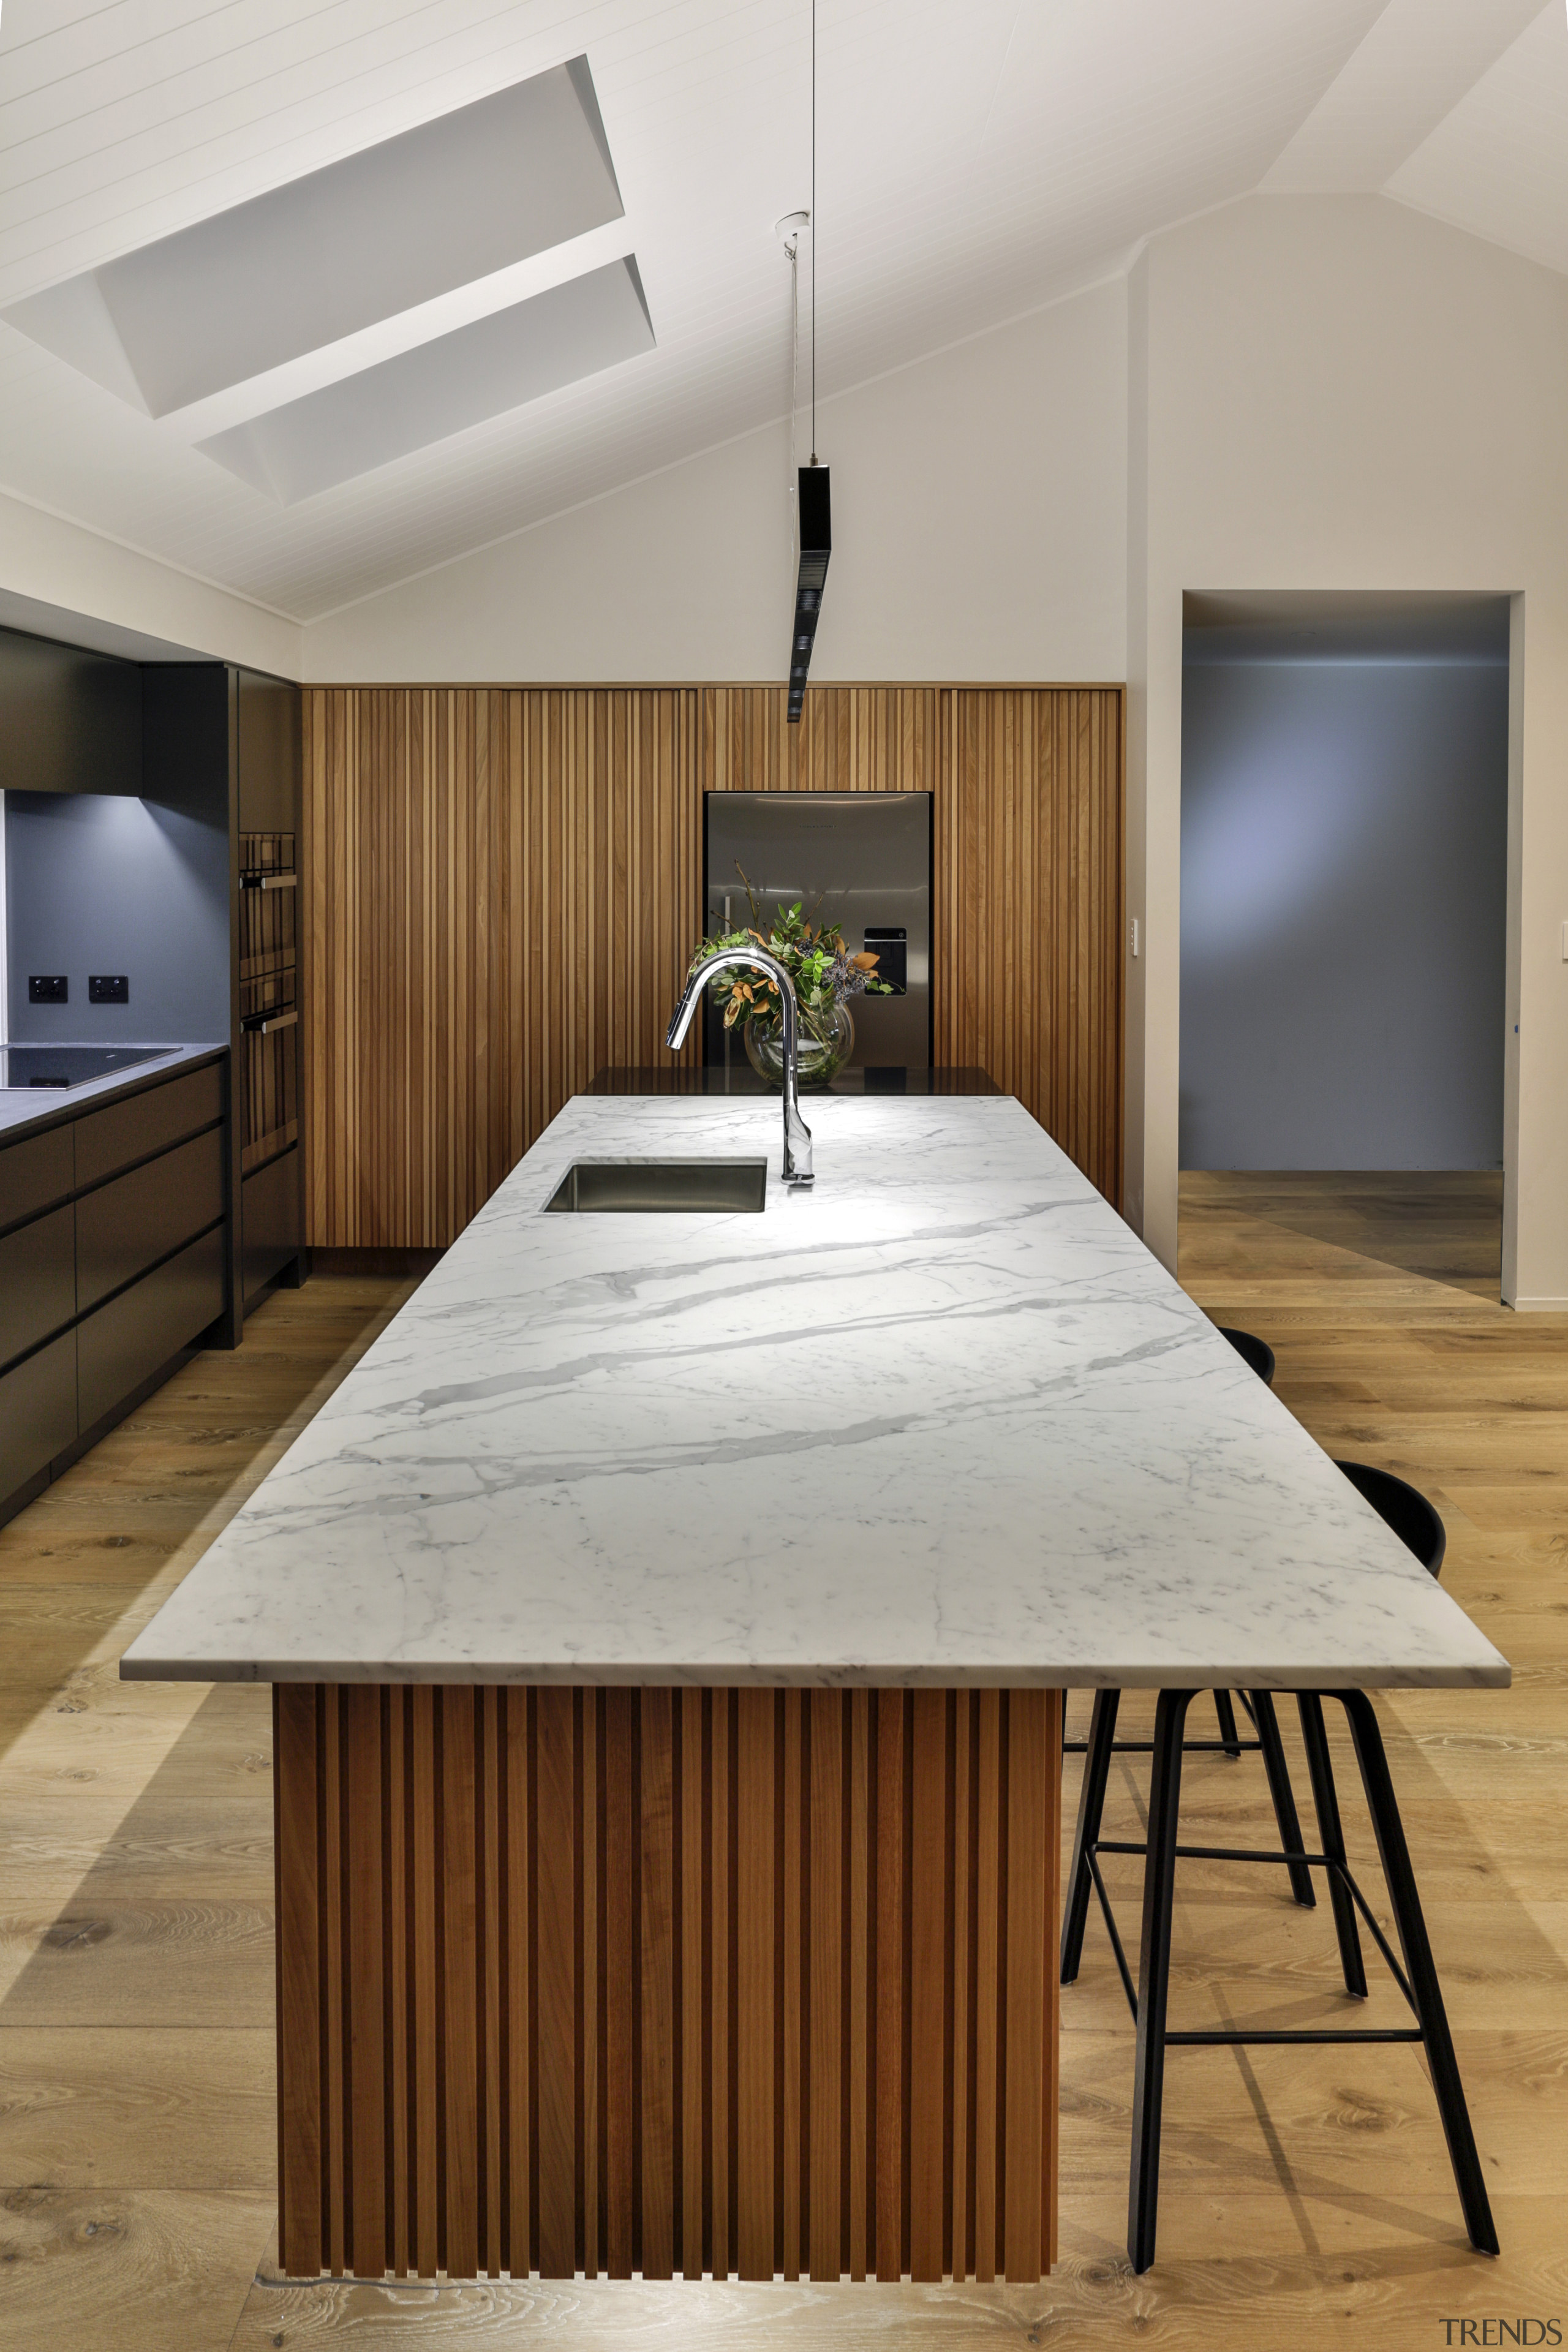 Half Moon Bay - architecture | countertop | architecture, countertop, floor, flooring, furniture, hardwood, interior design, kitchen, table, wood, wood flooring, gray, brown